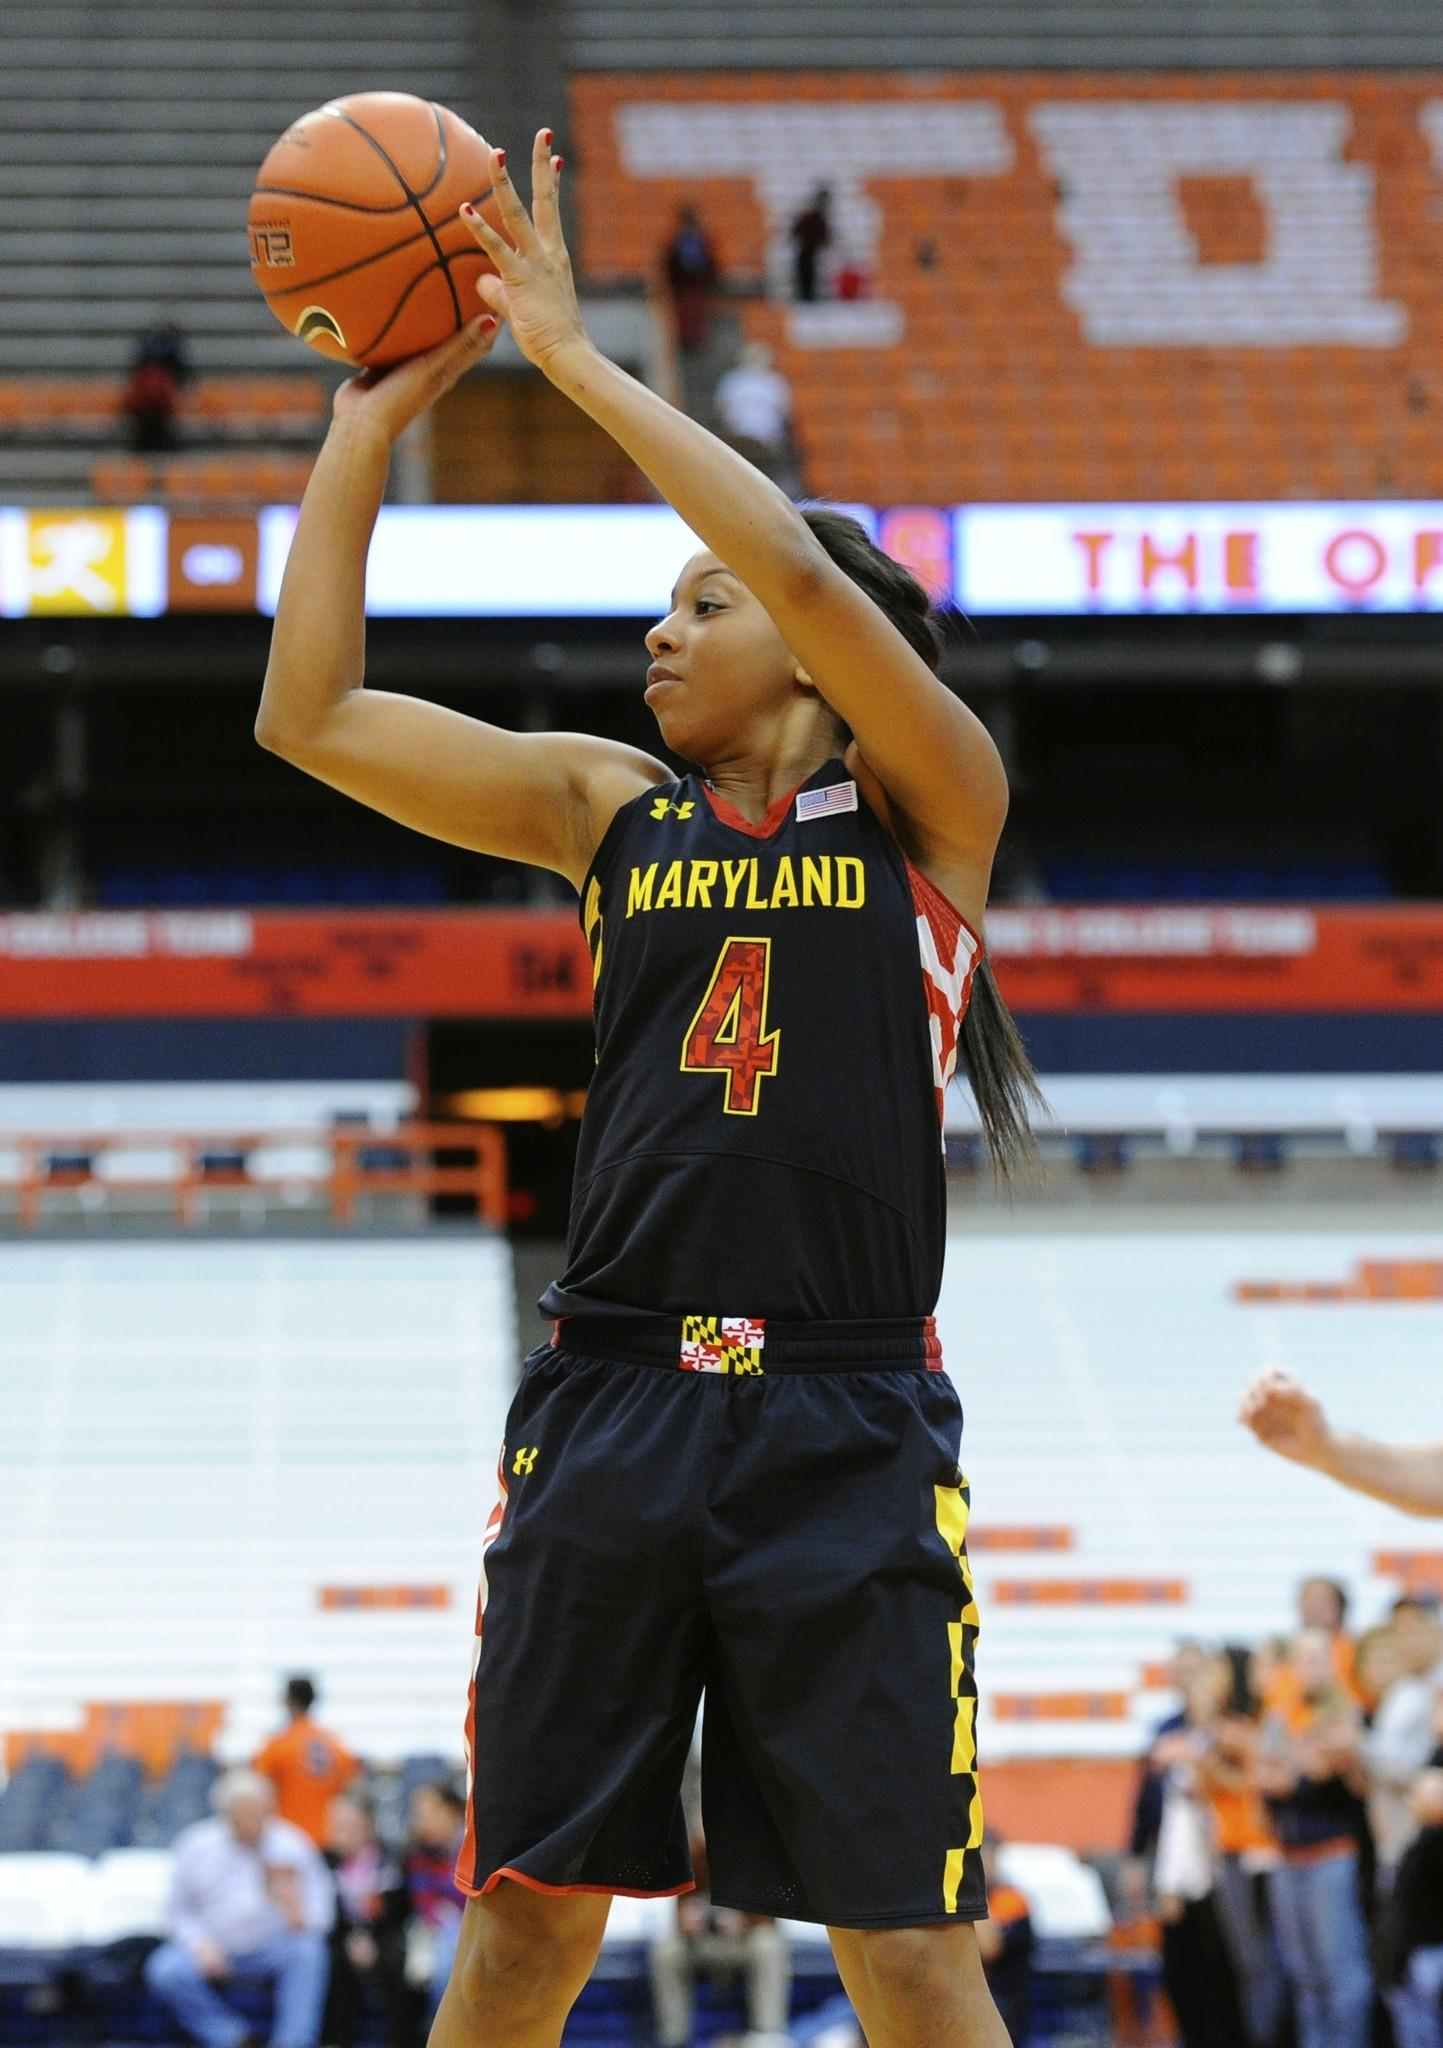 Feb 2, 2014; Syracuse, NY, USA; Maryland Terrapins guard Lexie Brown (4) takes a shot against the Syracuse Orange during the first half at the Carrier Dome. Maryland defeated Syracuse 89-64. Mandatory Credit: Rich Barnes-USA TODAY Sports